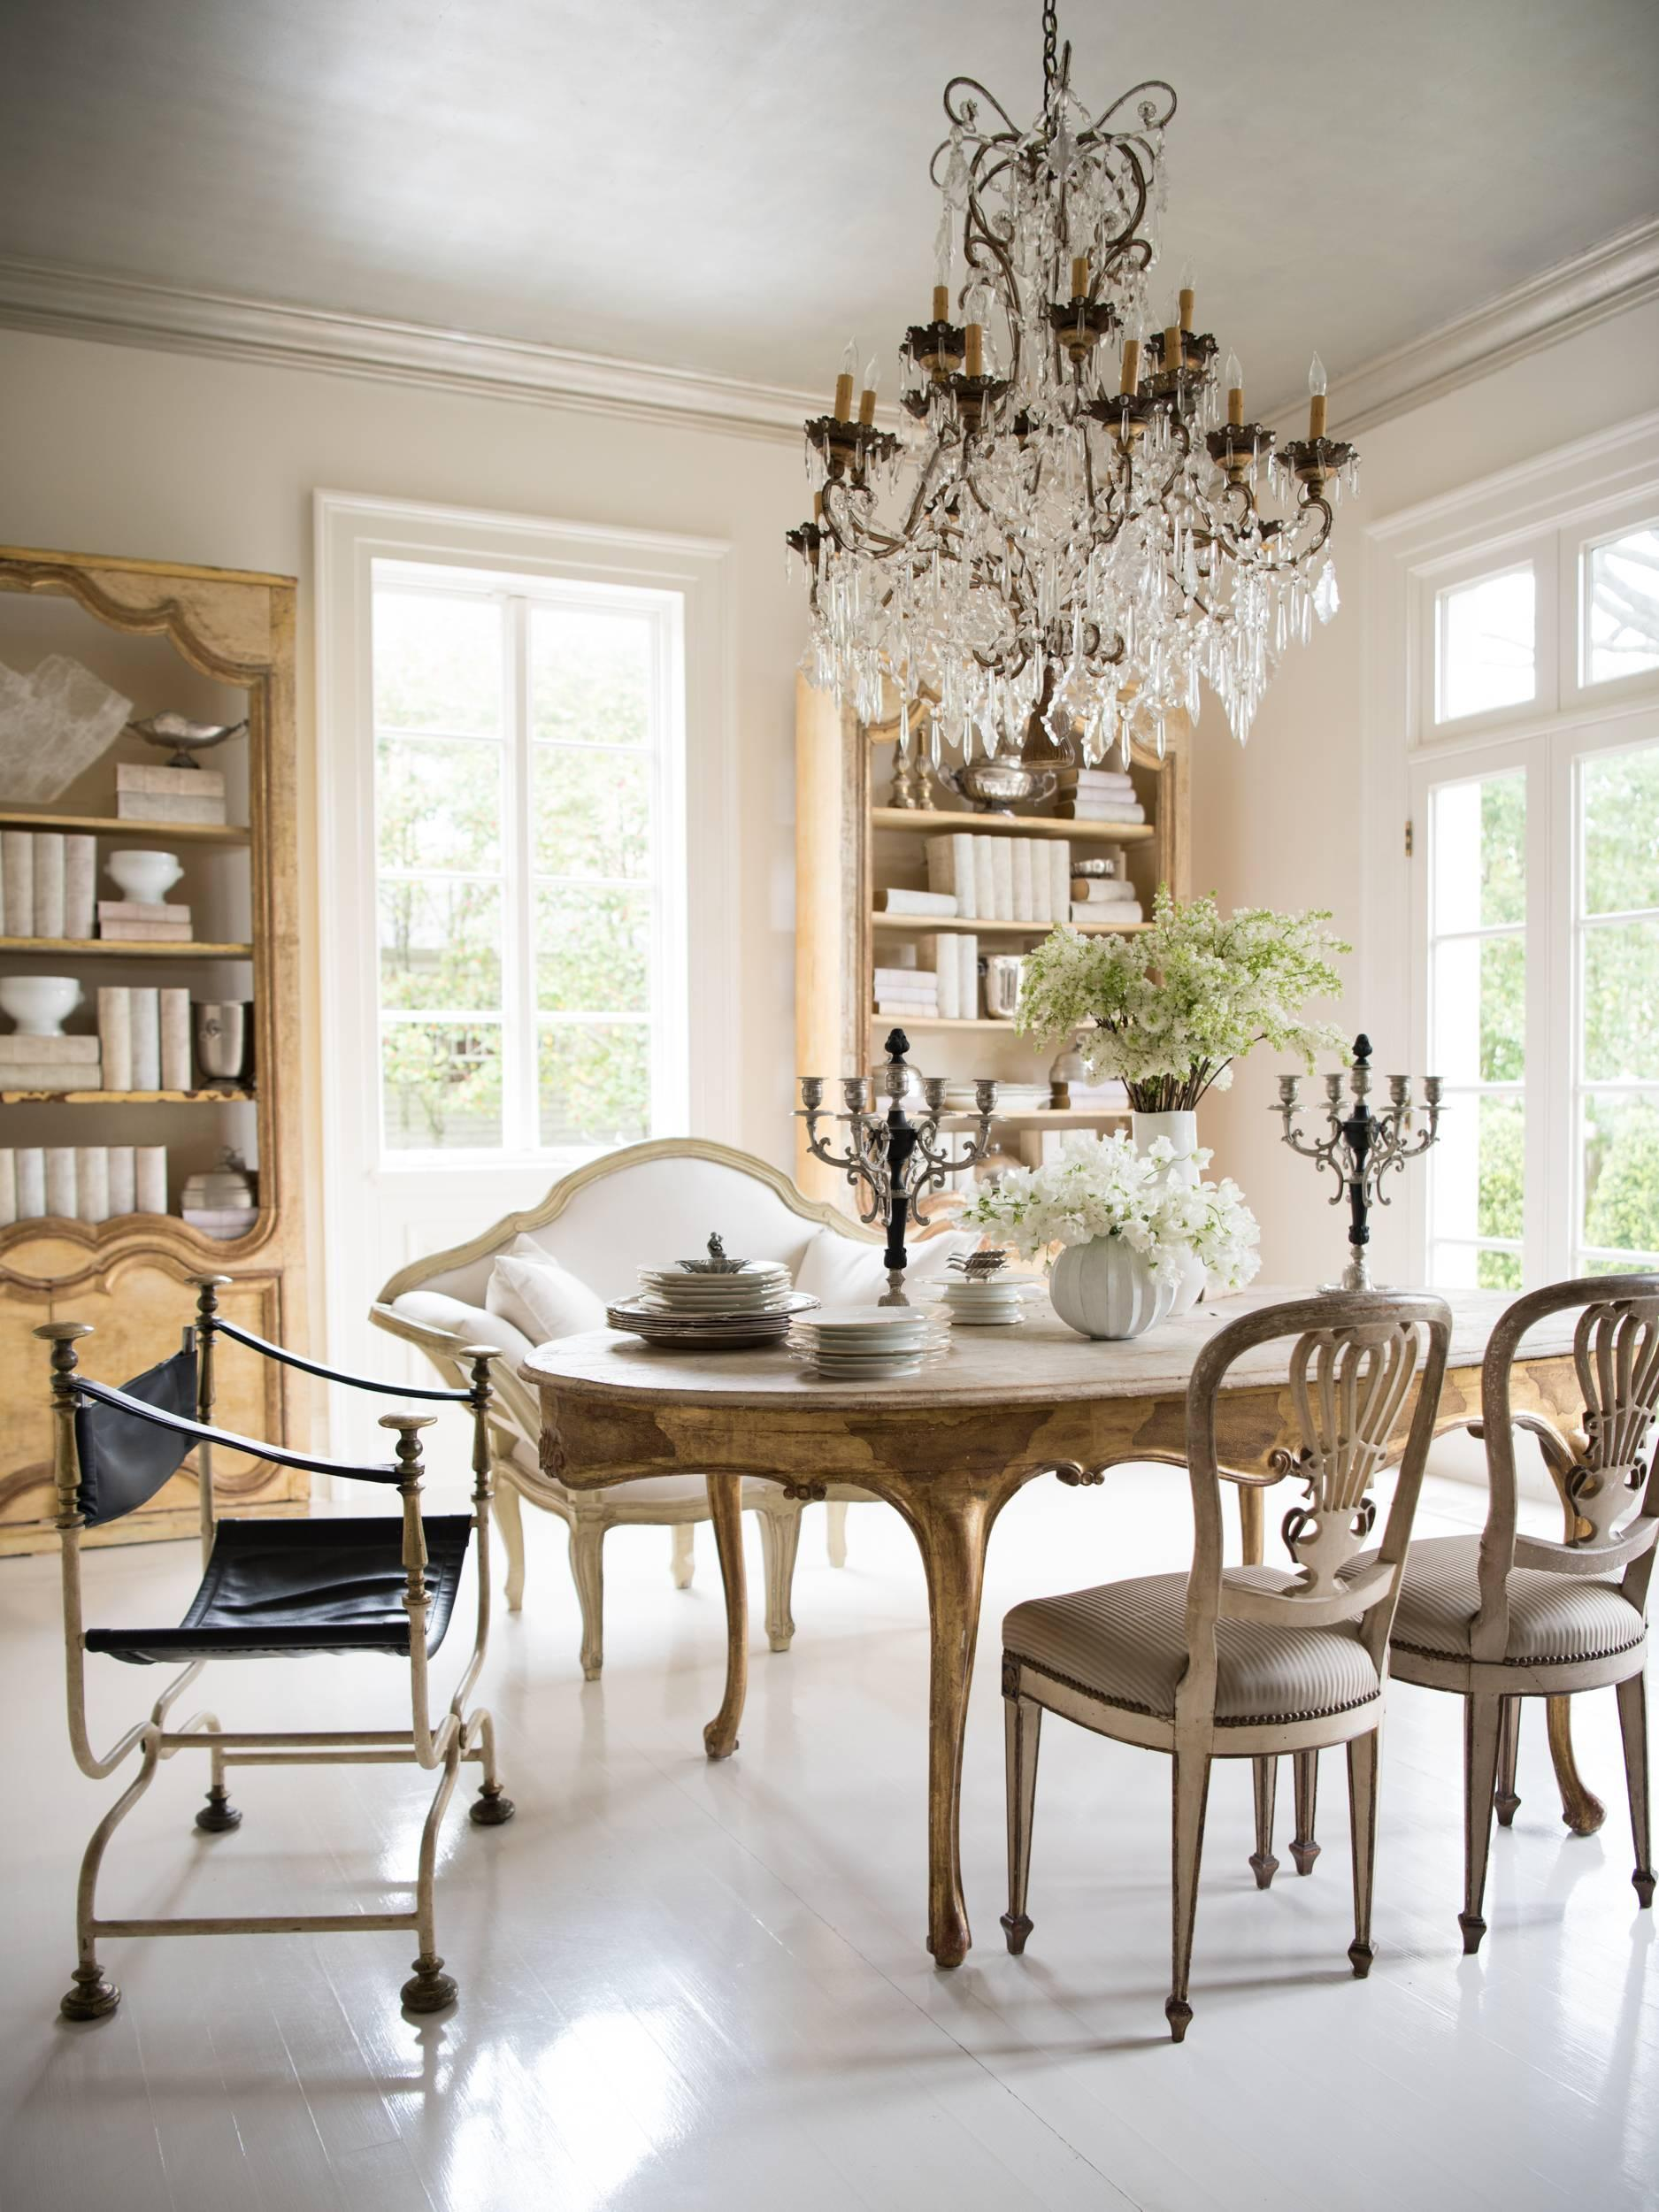 Dining Room Rules All The Key Ingredients F A French Dining Room! 2